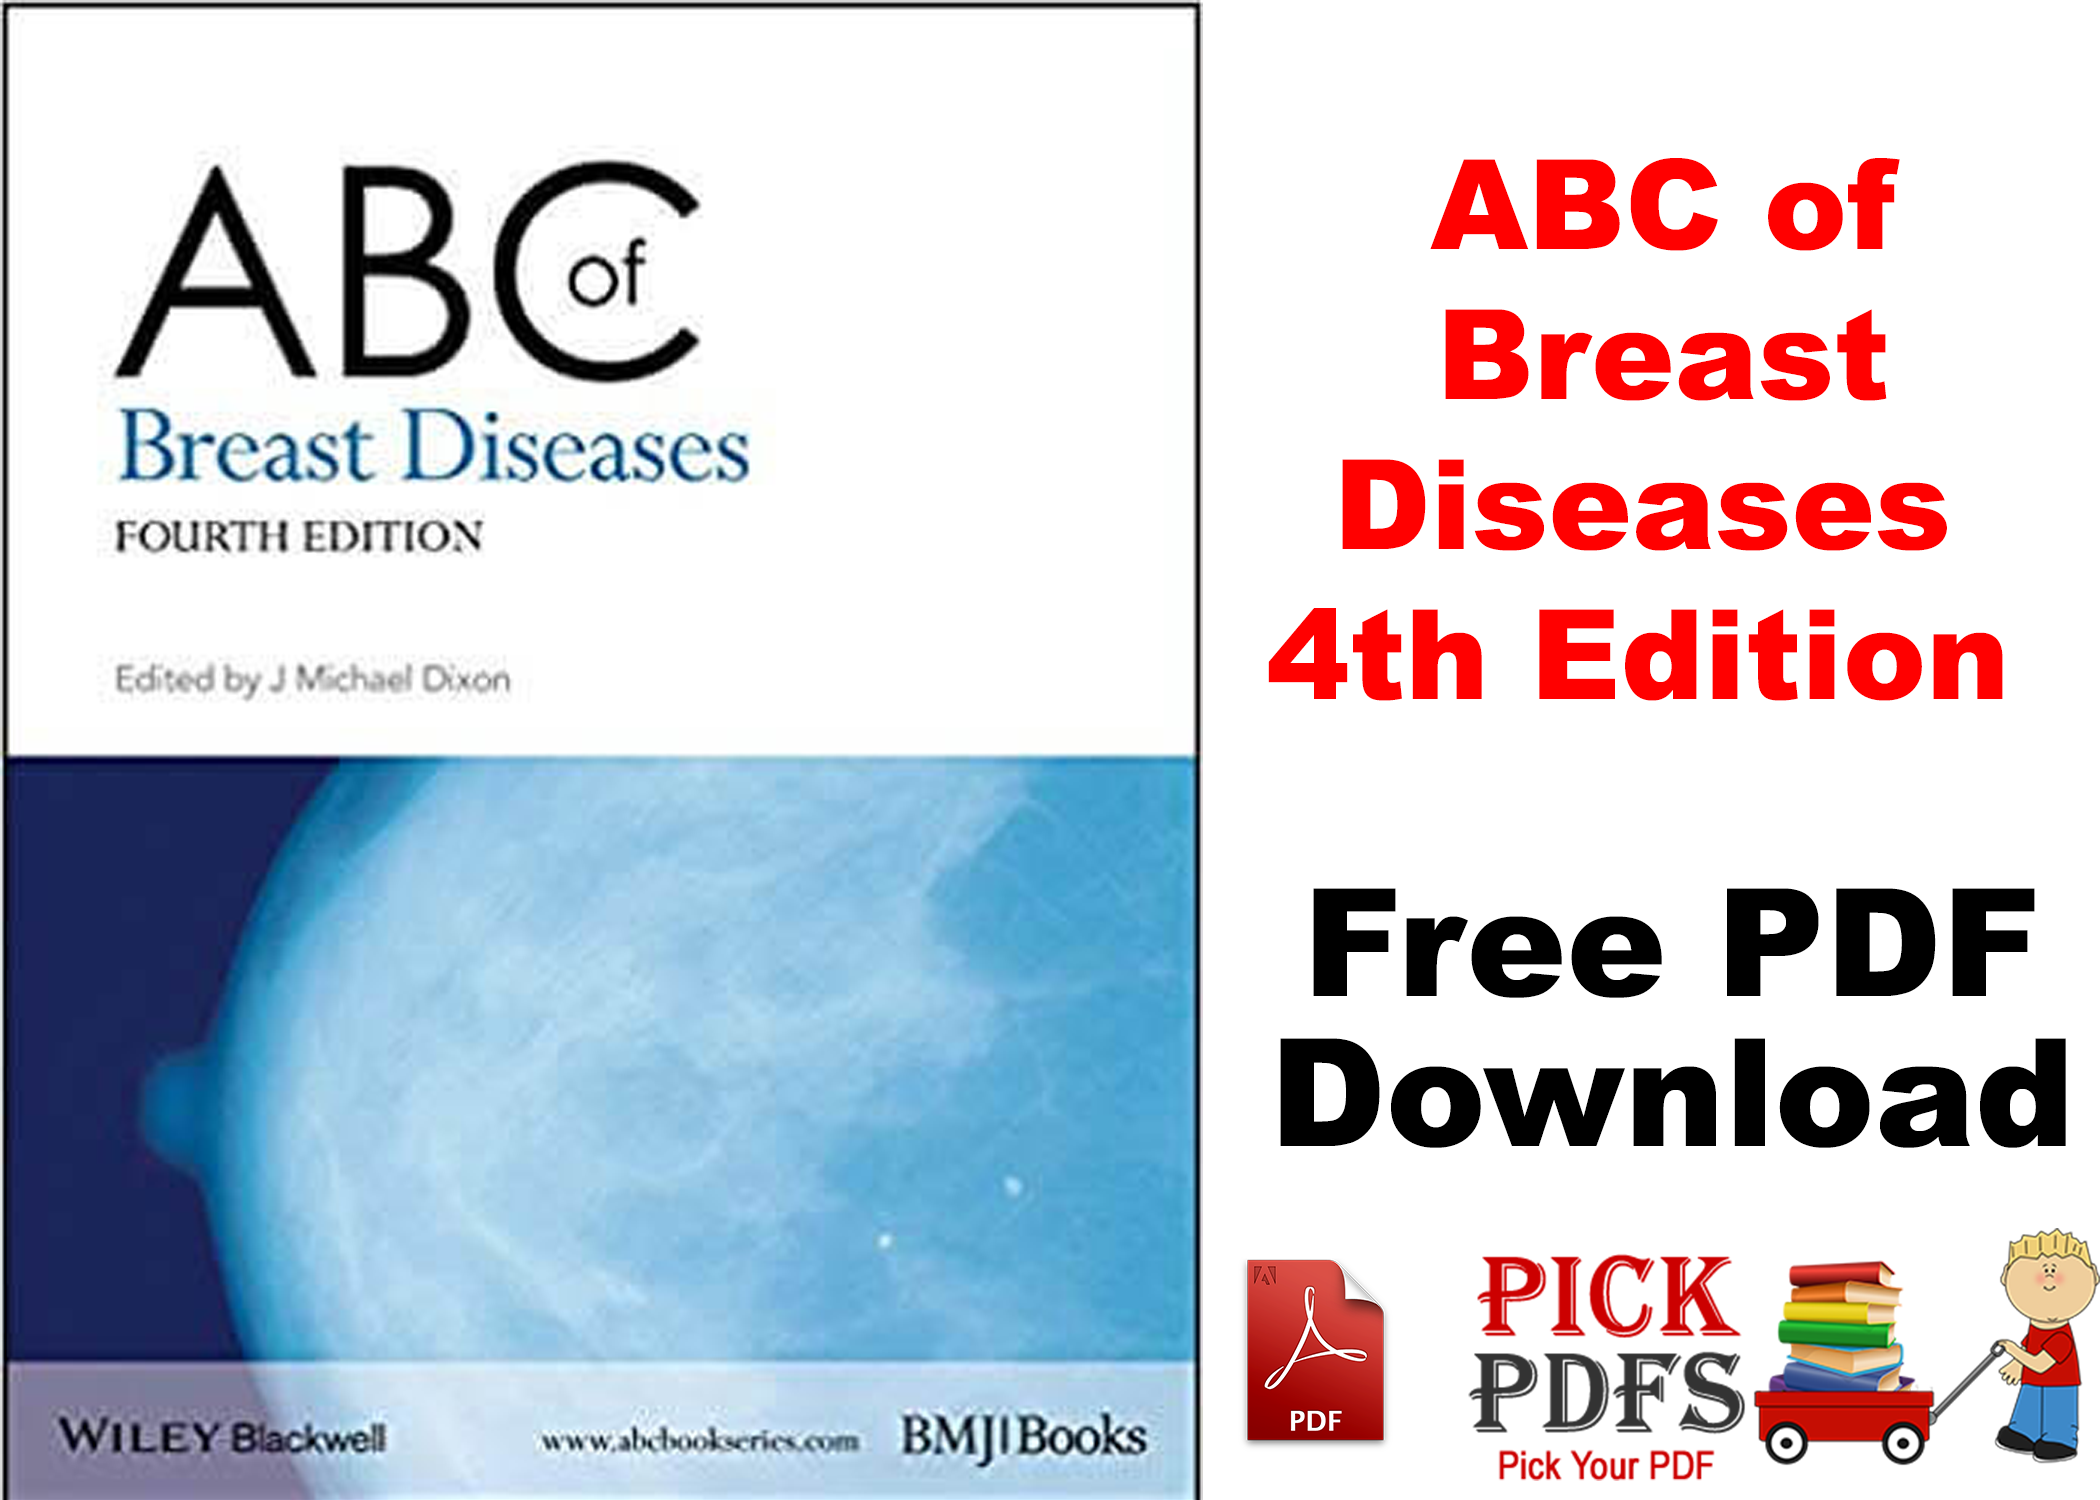 https://pickpdfs.com/abc-of-breast-diseases-4th-edition-free-pdf-download-direct-link/